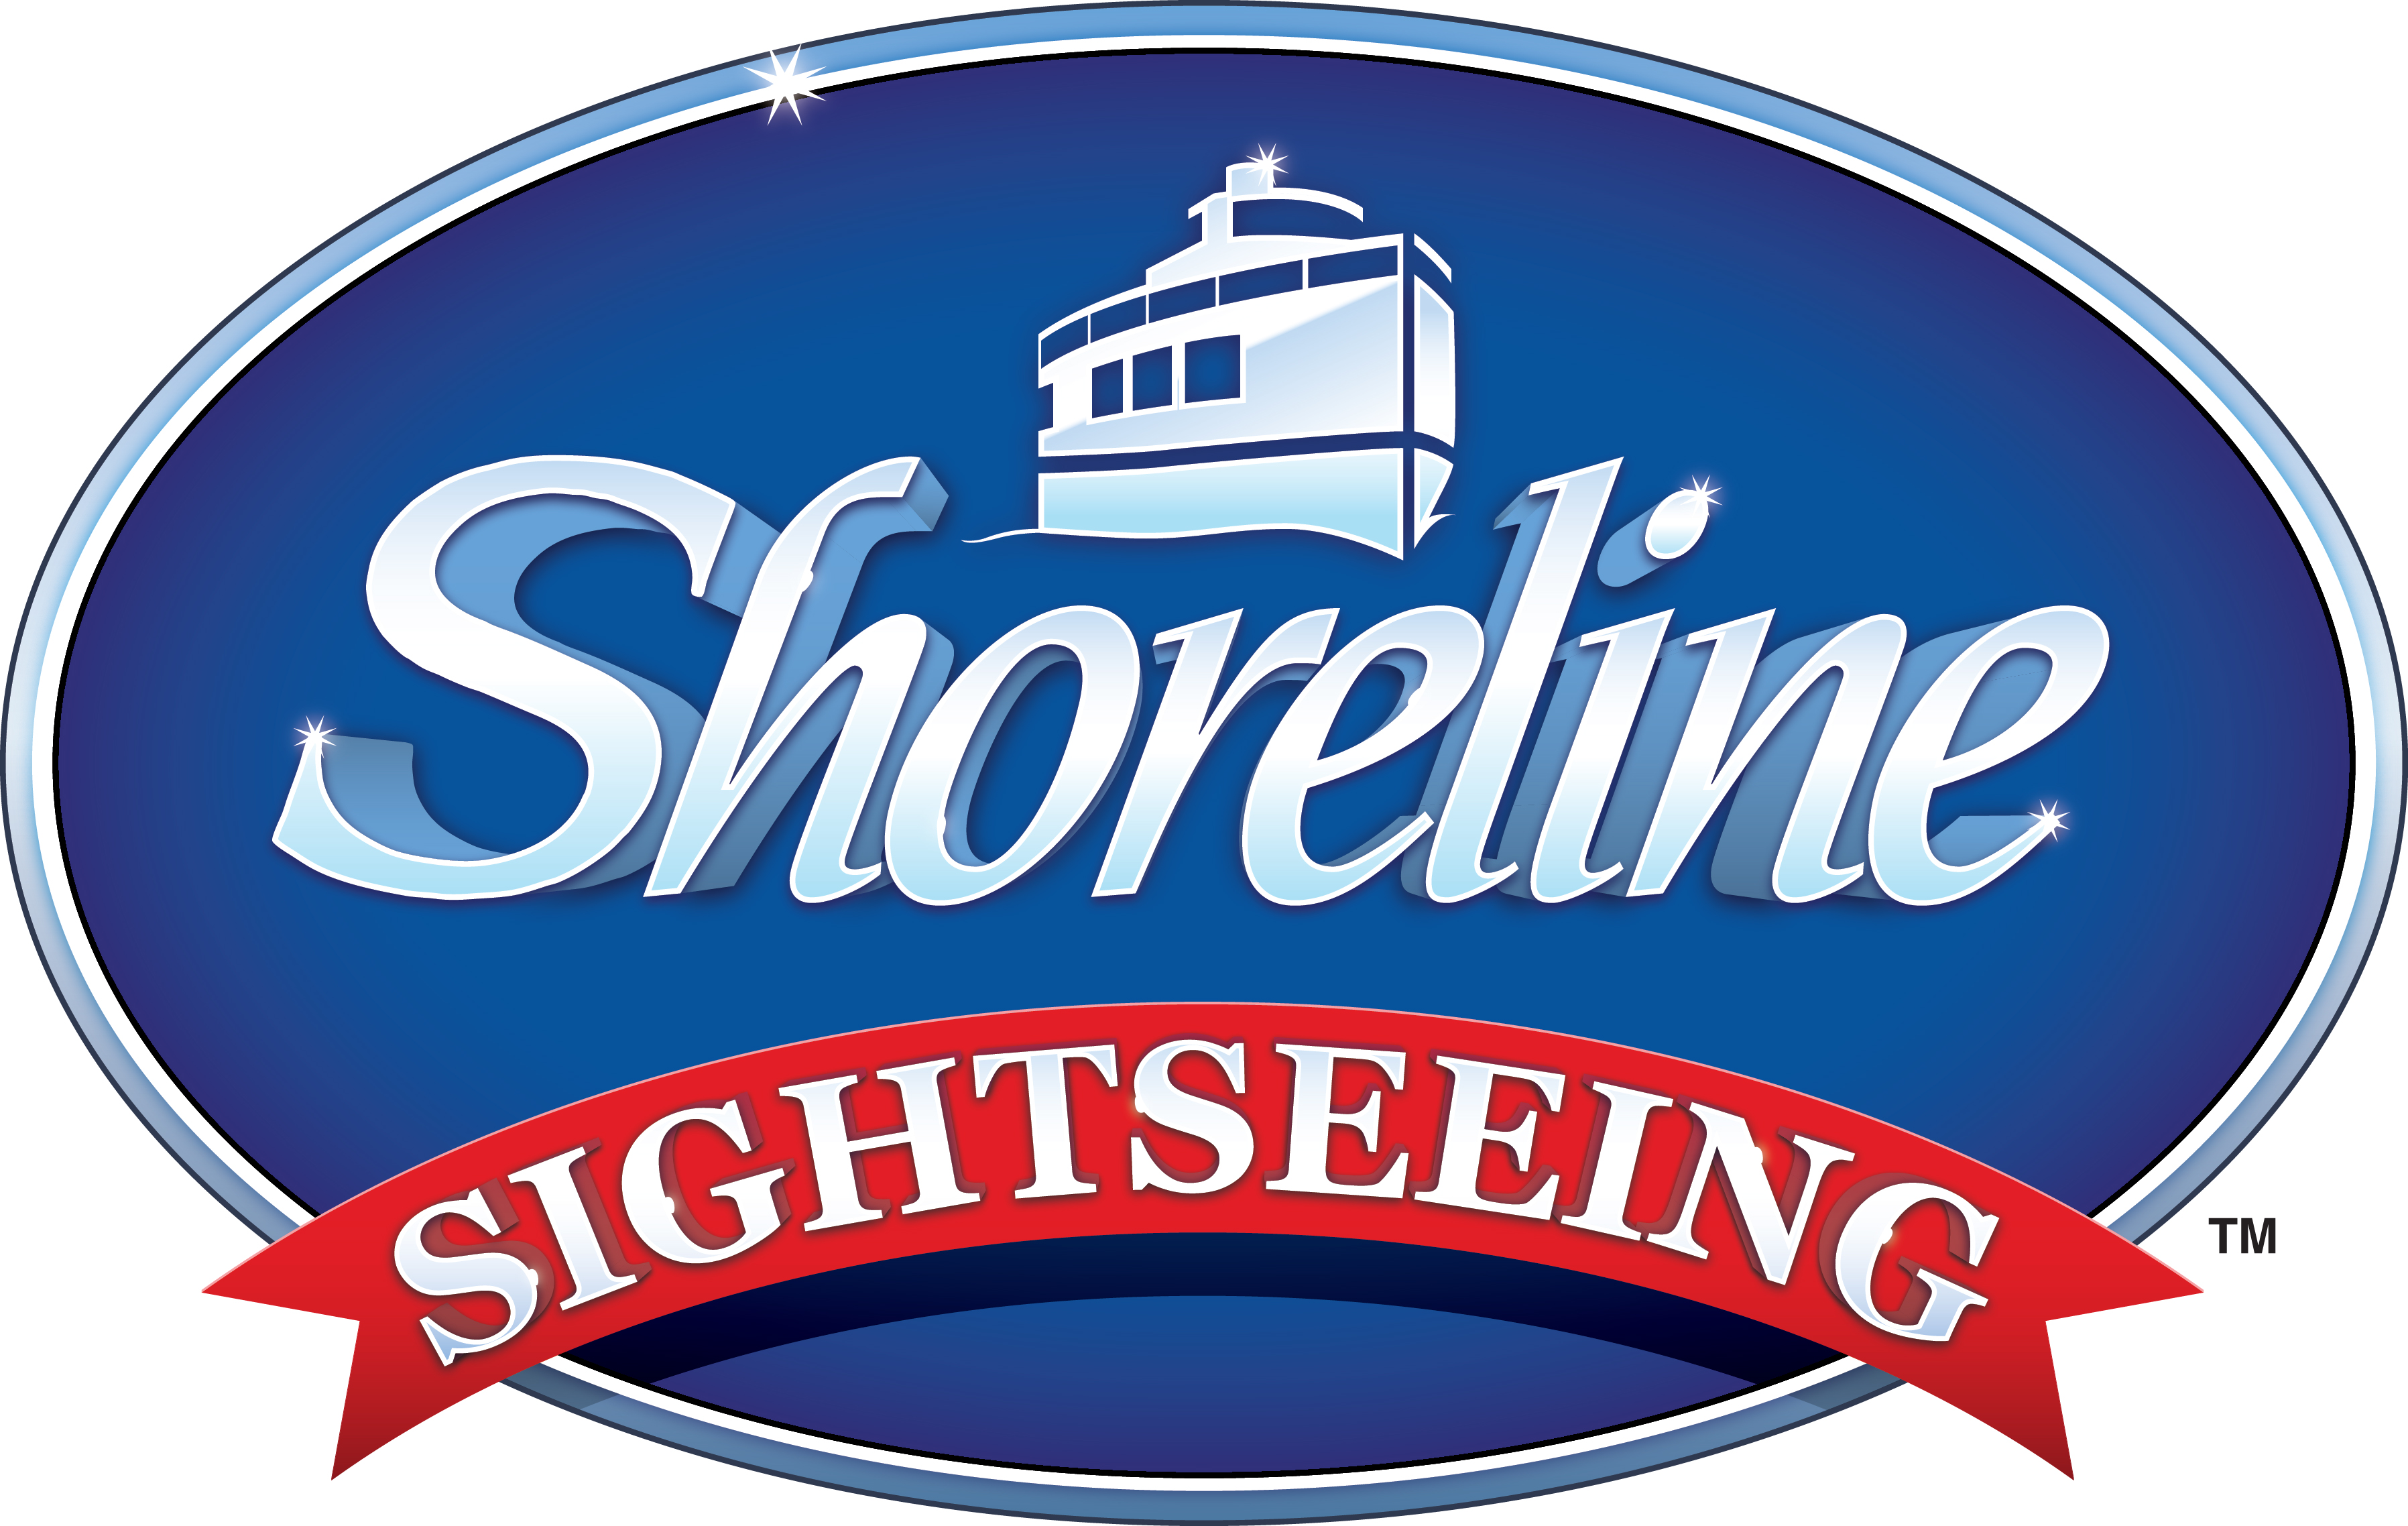 Shoreline Sightseeing save $5 on an Architecture River Tour Logo